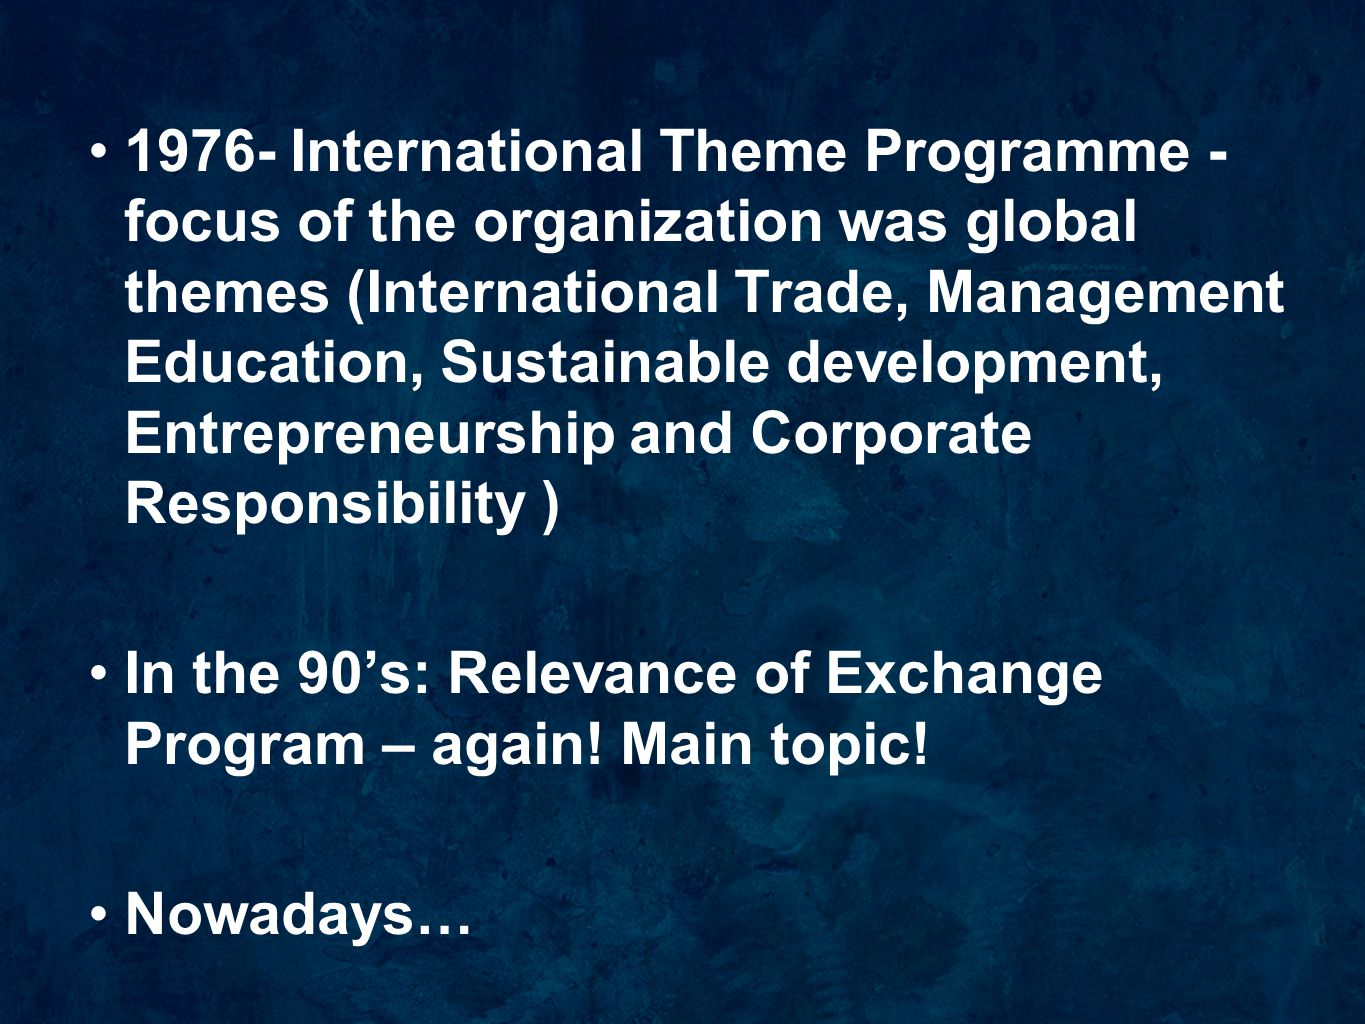 1976- International Theme Programme - focus of the organization was global themes (International Trade, Management Education, Sustainable development, Entrepreneurship and Corporate Responsibility )